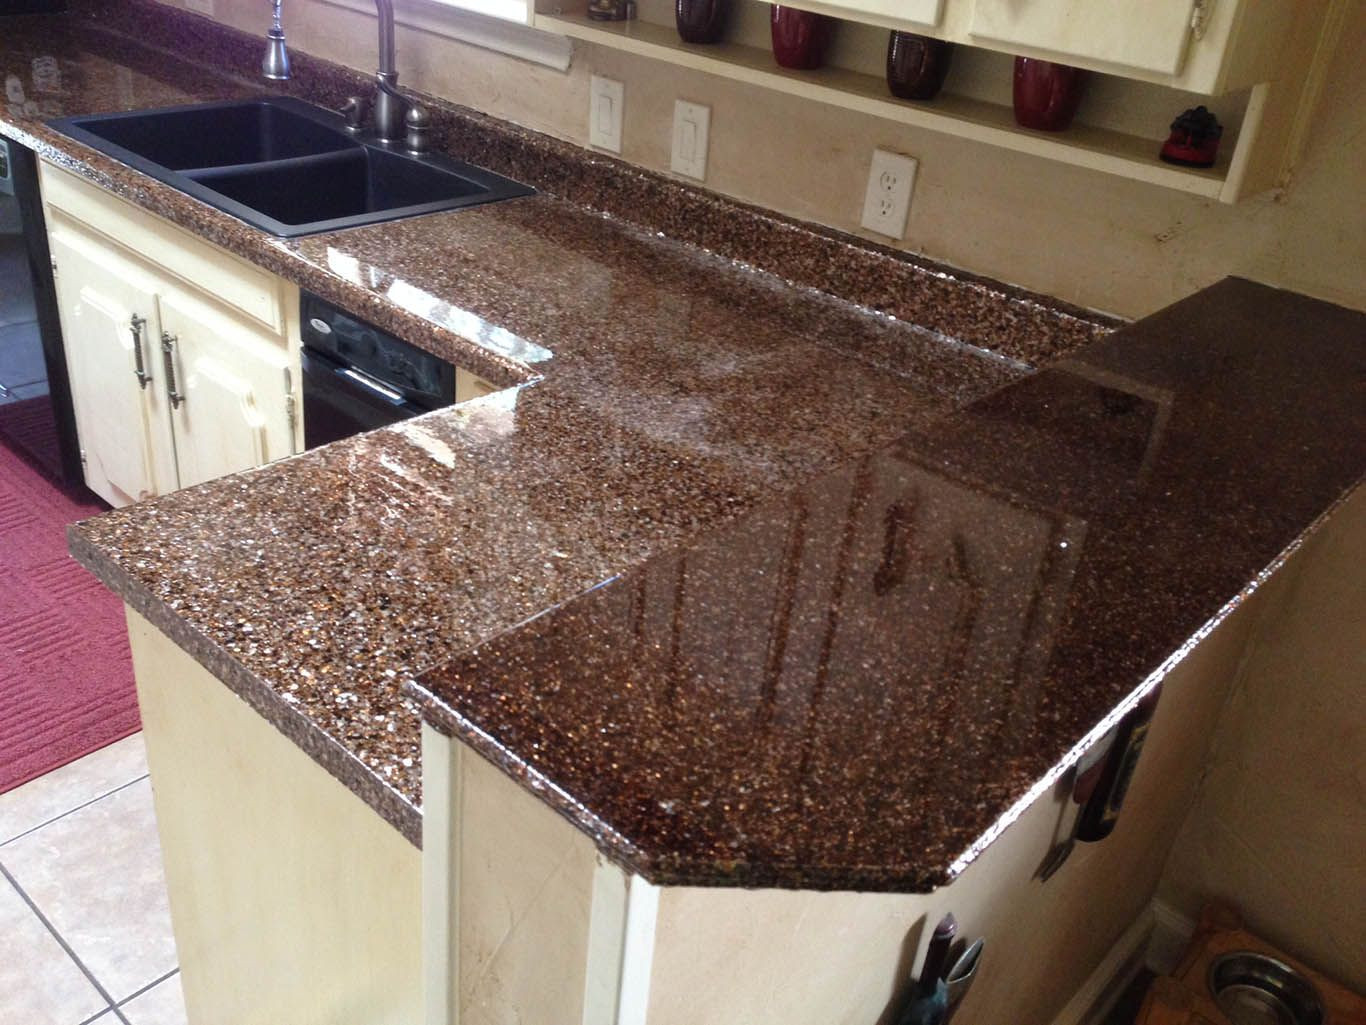 Best ideas about DIY Epoxy Countertops . Save or Pin Idea for diy epoxy countertop Now.